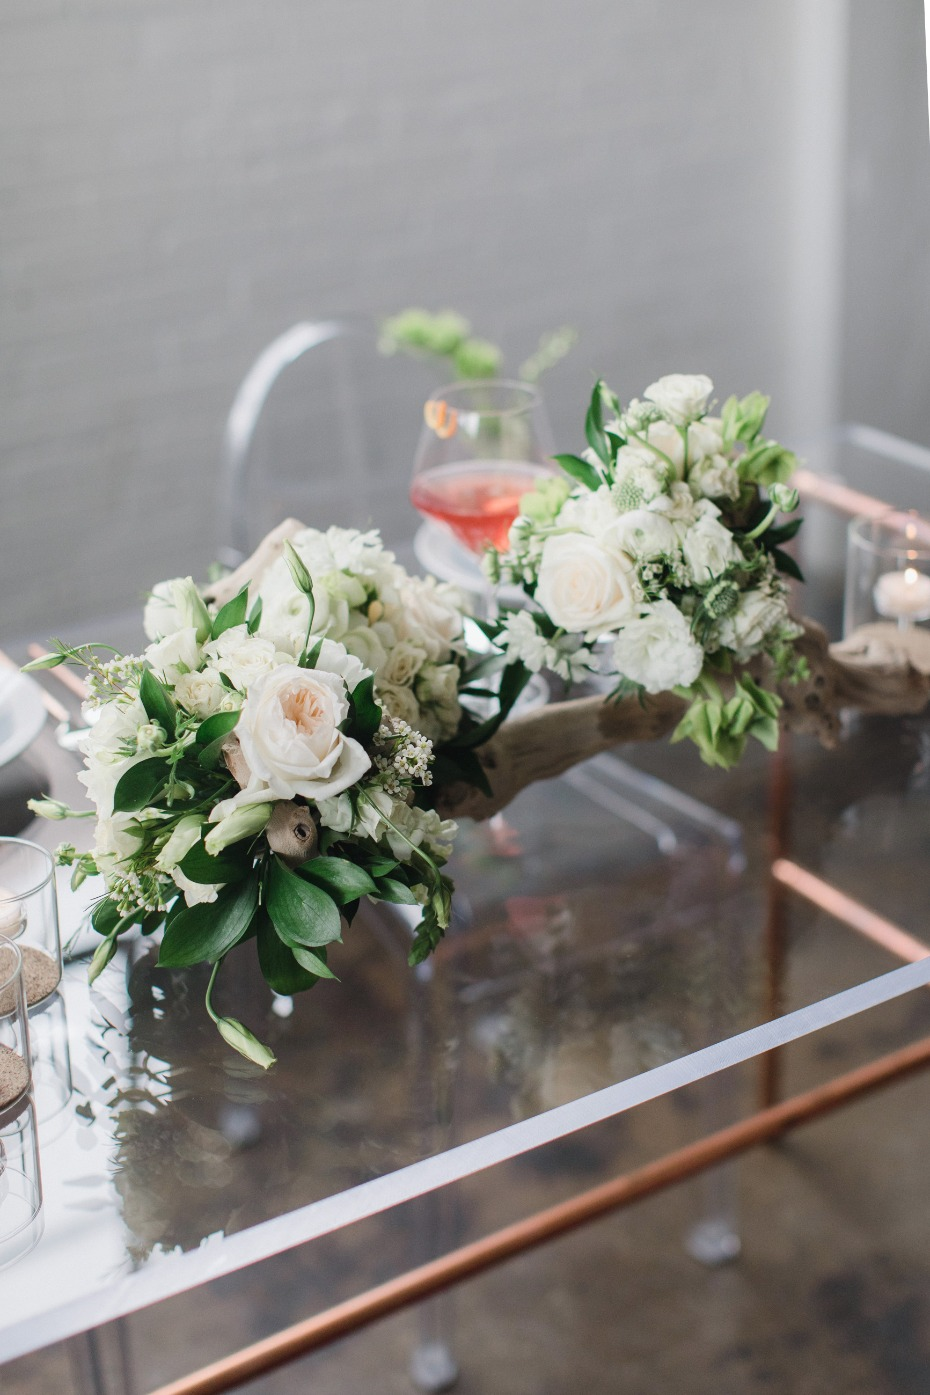 Driftwood centerpiece with flowers